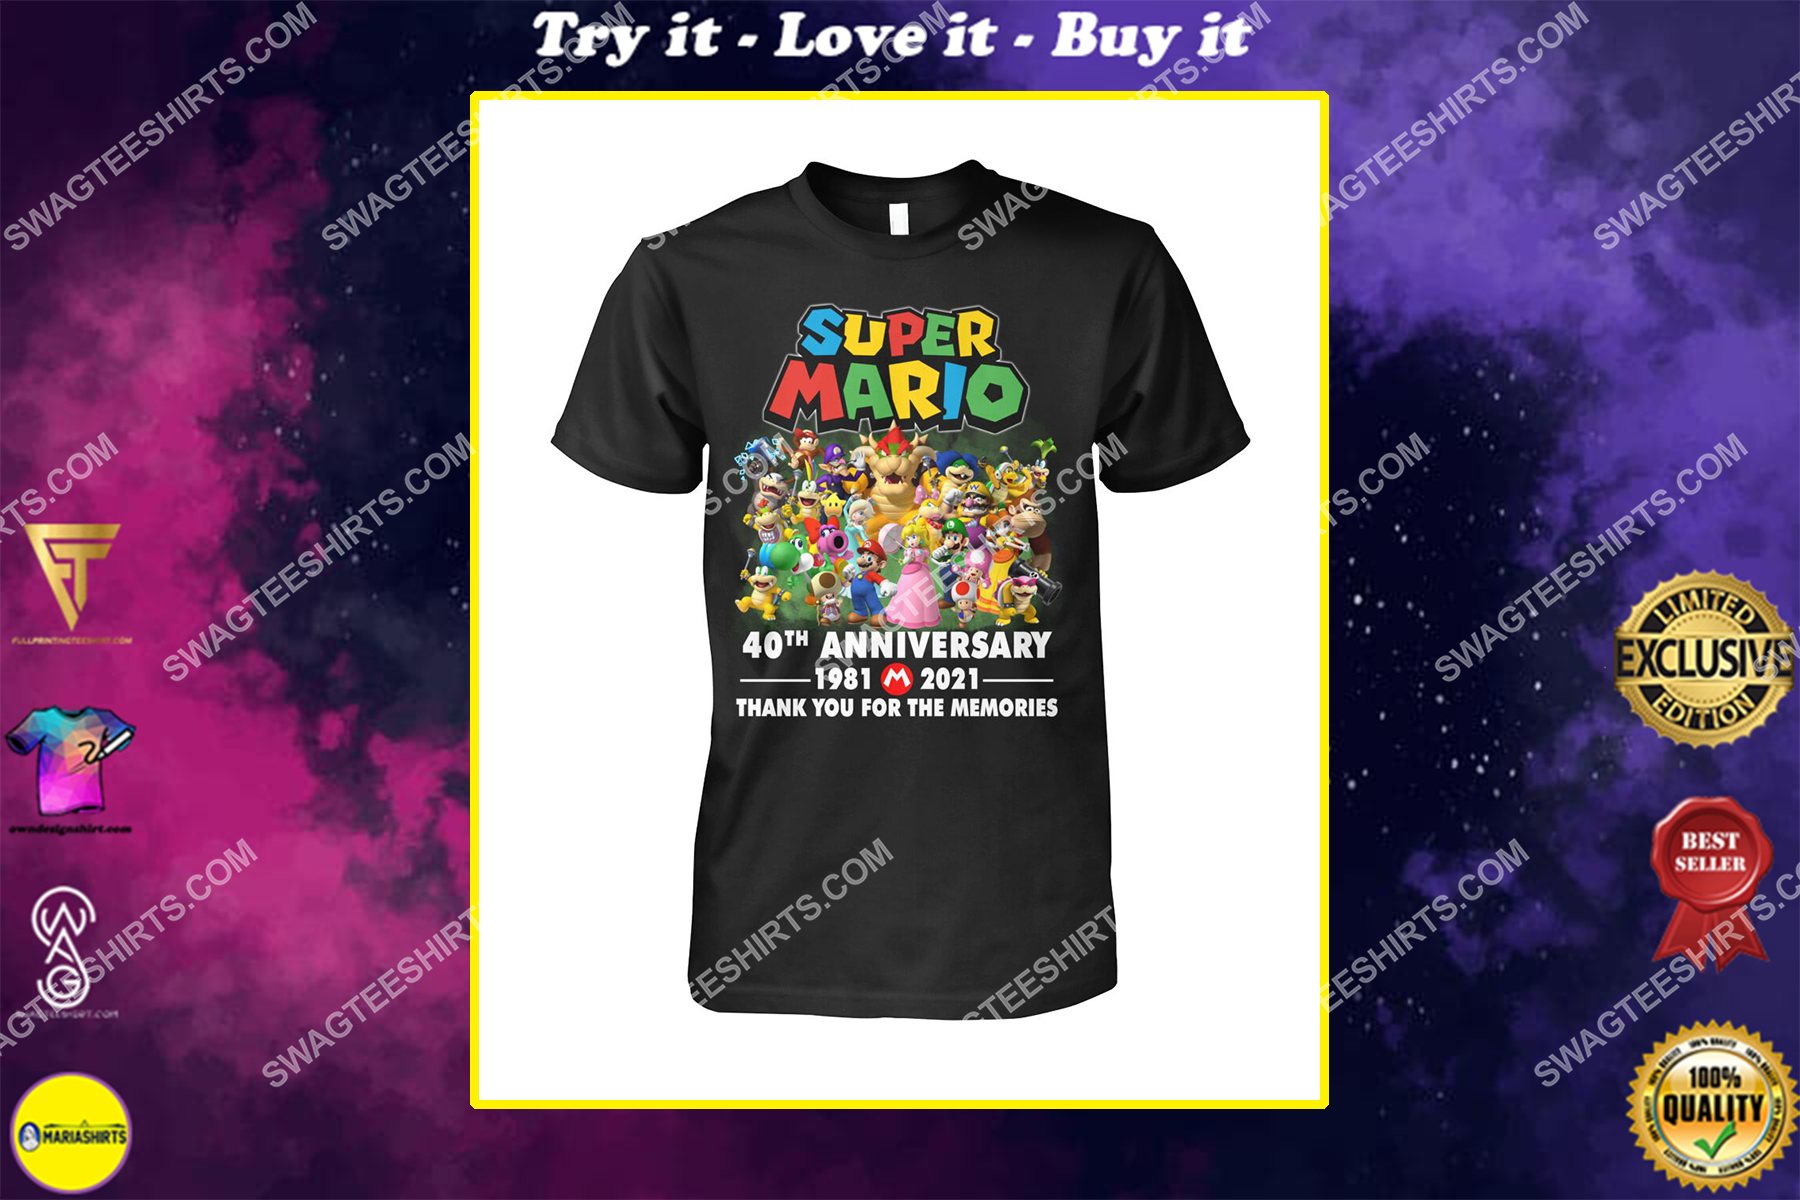 super mario 40th anniversary thank you for the memories shirt